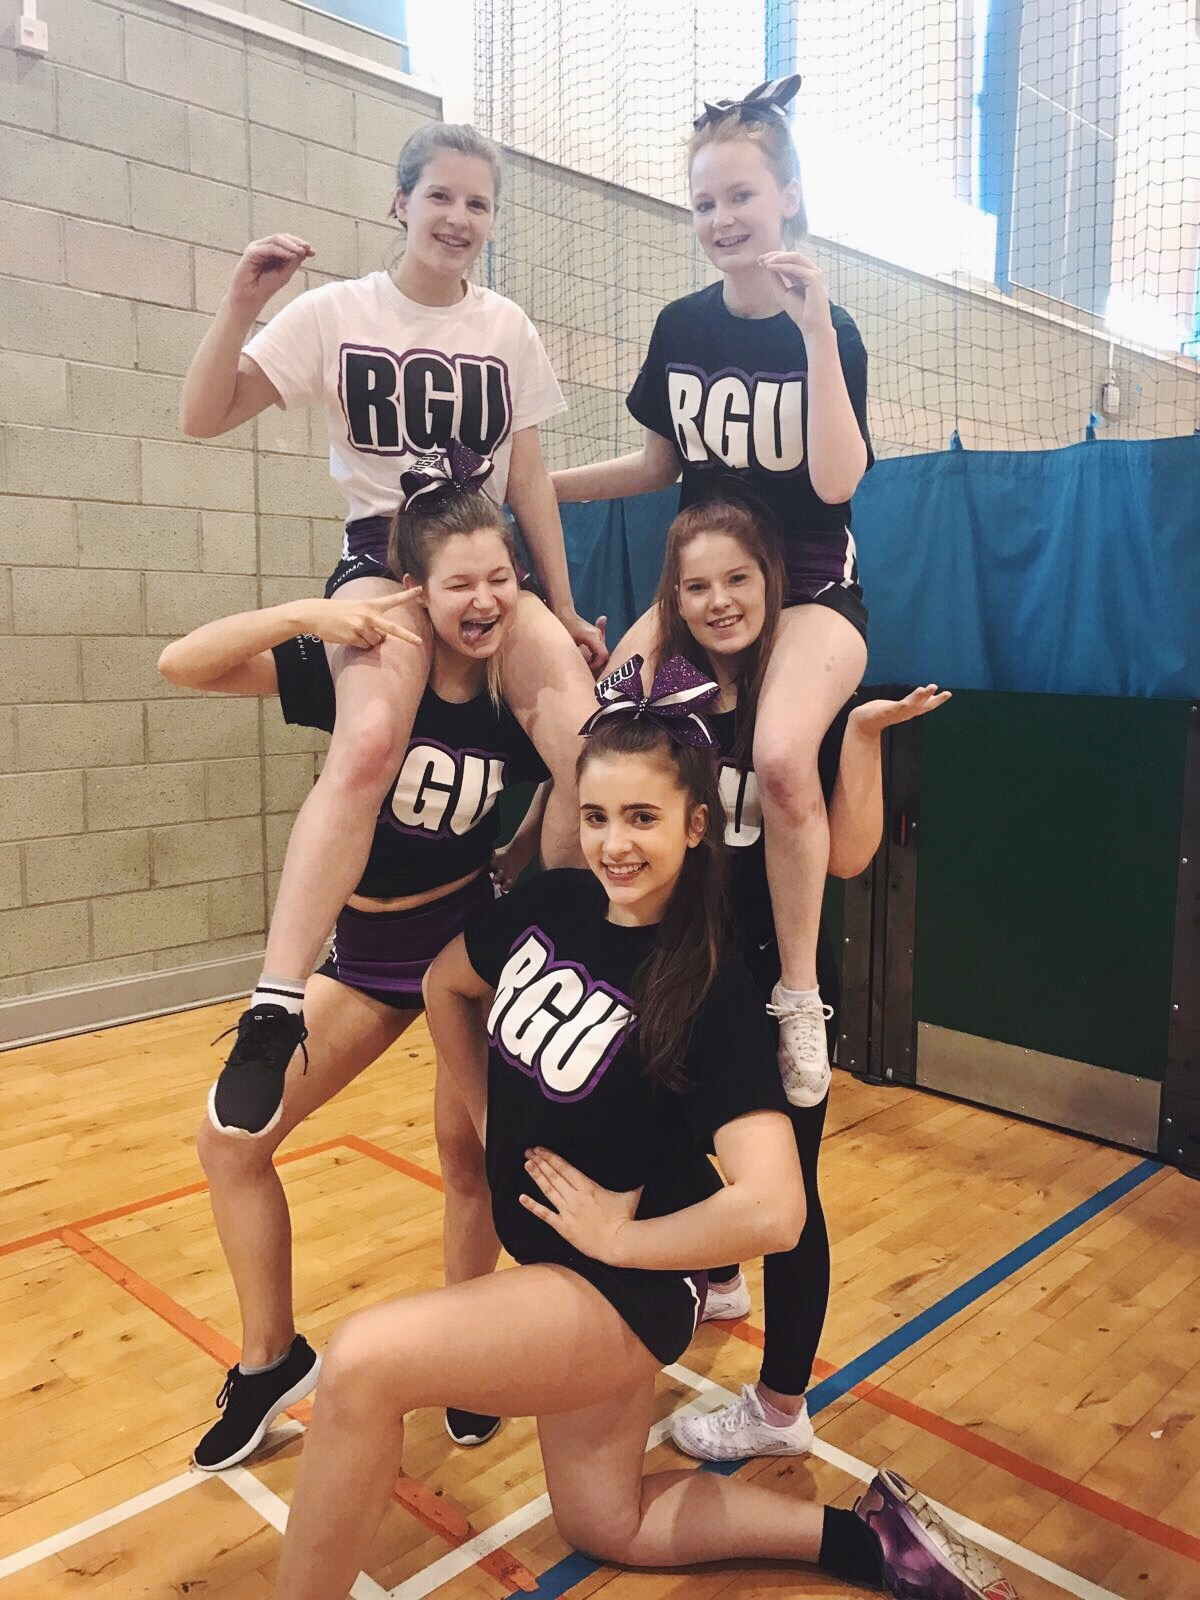 RGU Cheerleading Squad Level 1 Cobras